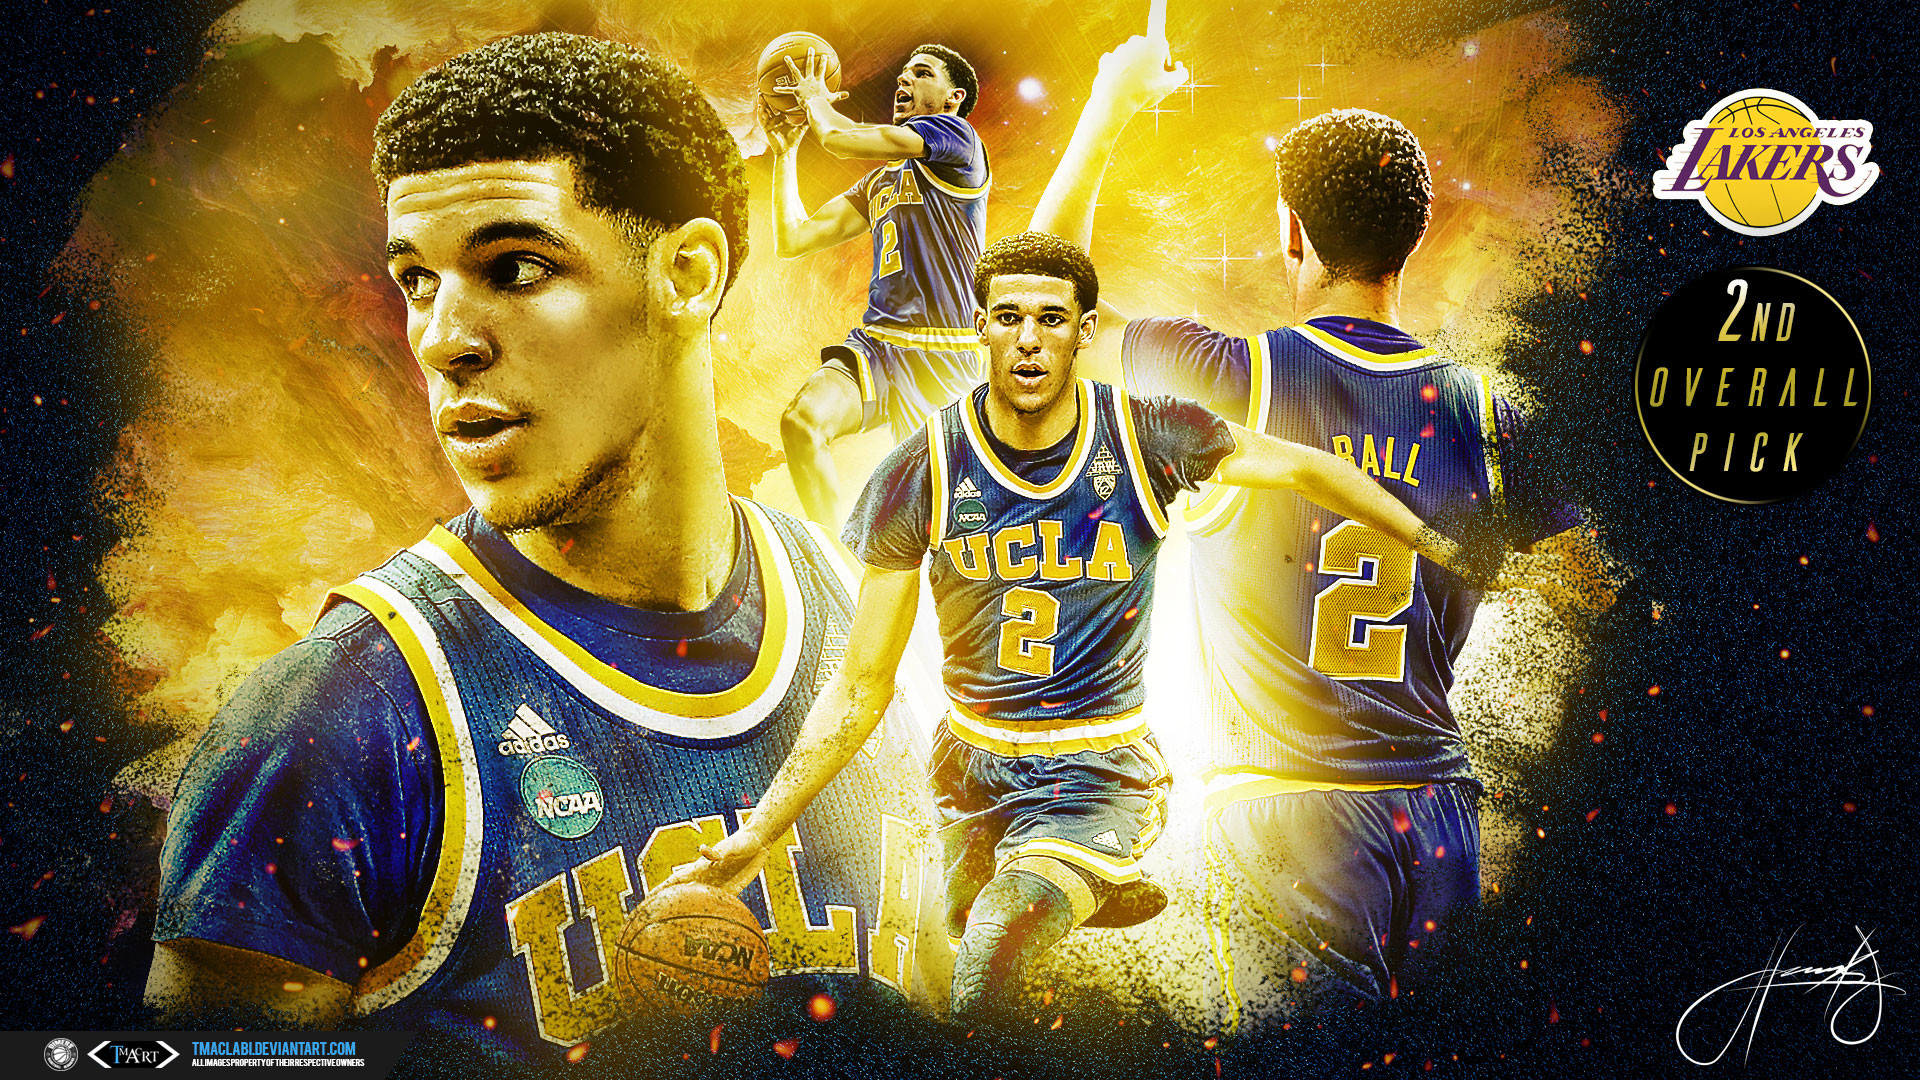 Lonzo Ball Hd Pictures >> Lonzo Ball Wallpapers (70+ images)